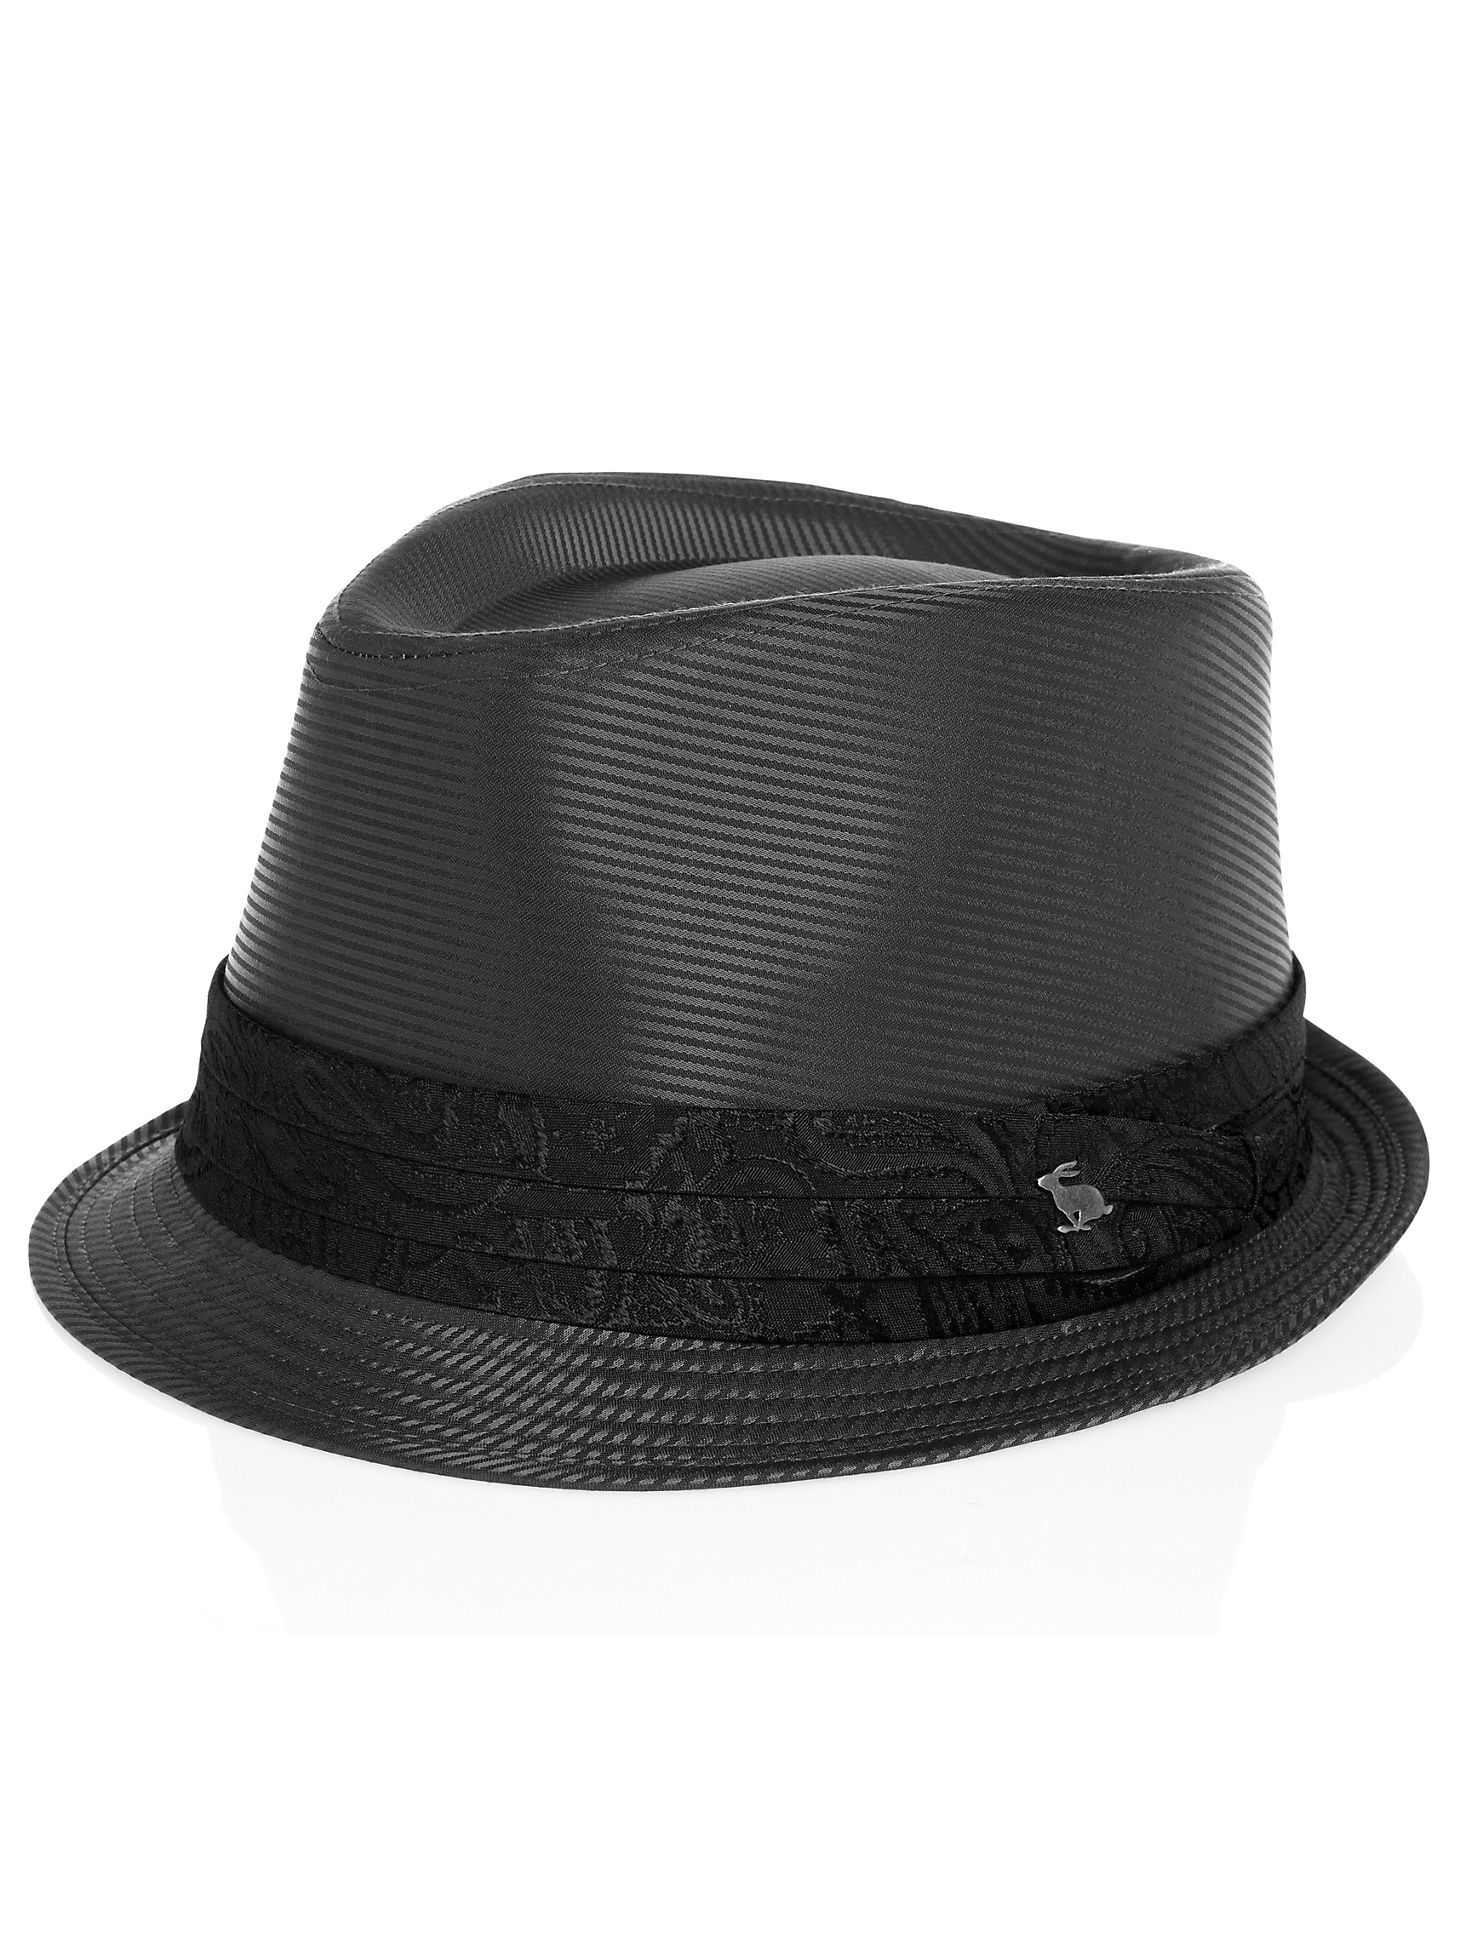 8a14ac1afac Accessories - Peter Grimm Gray Stripe Fedora - Men s Wearhouse Popular Hats